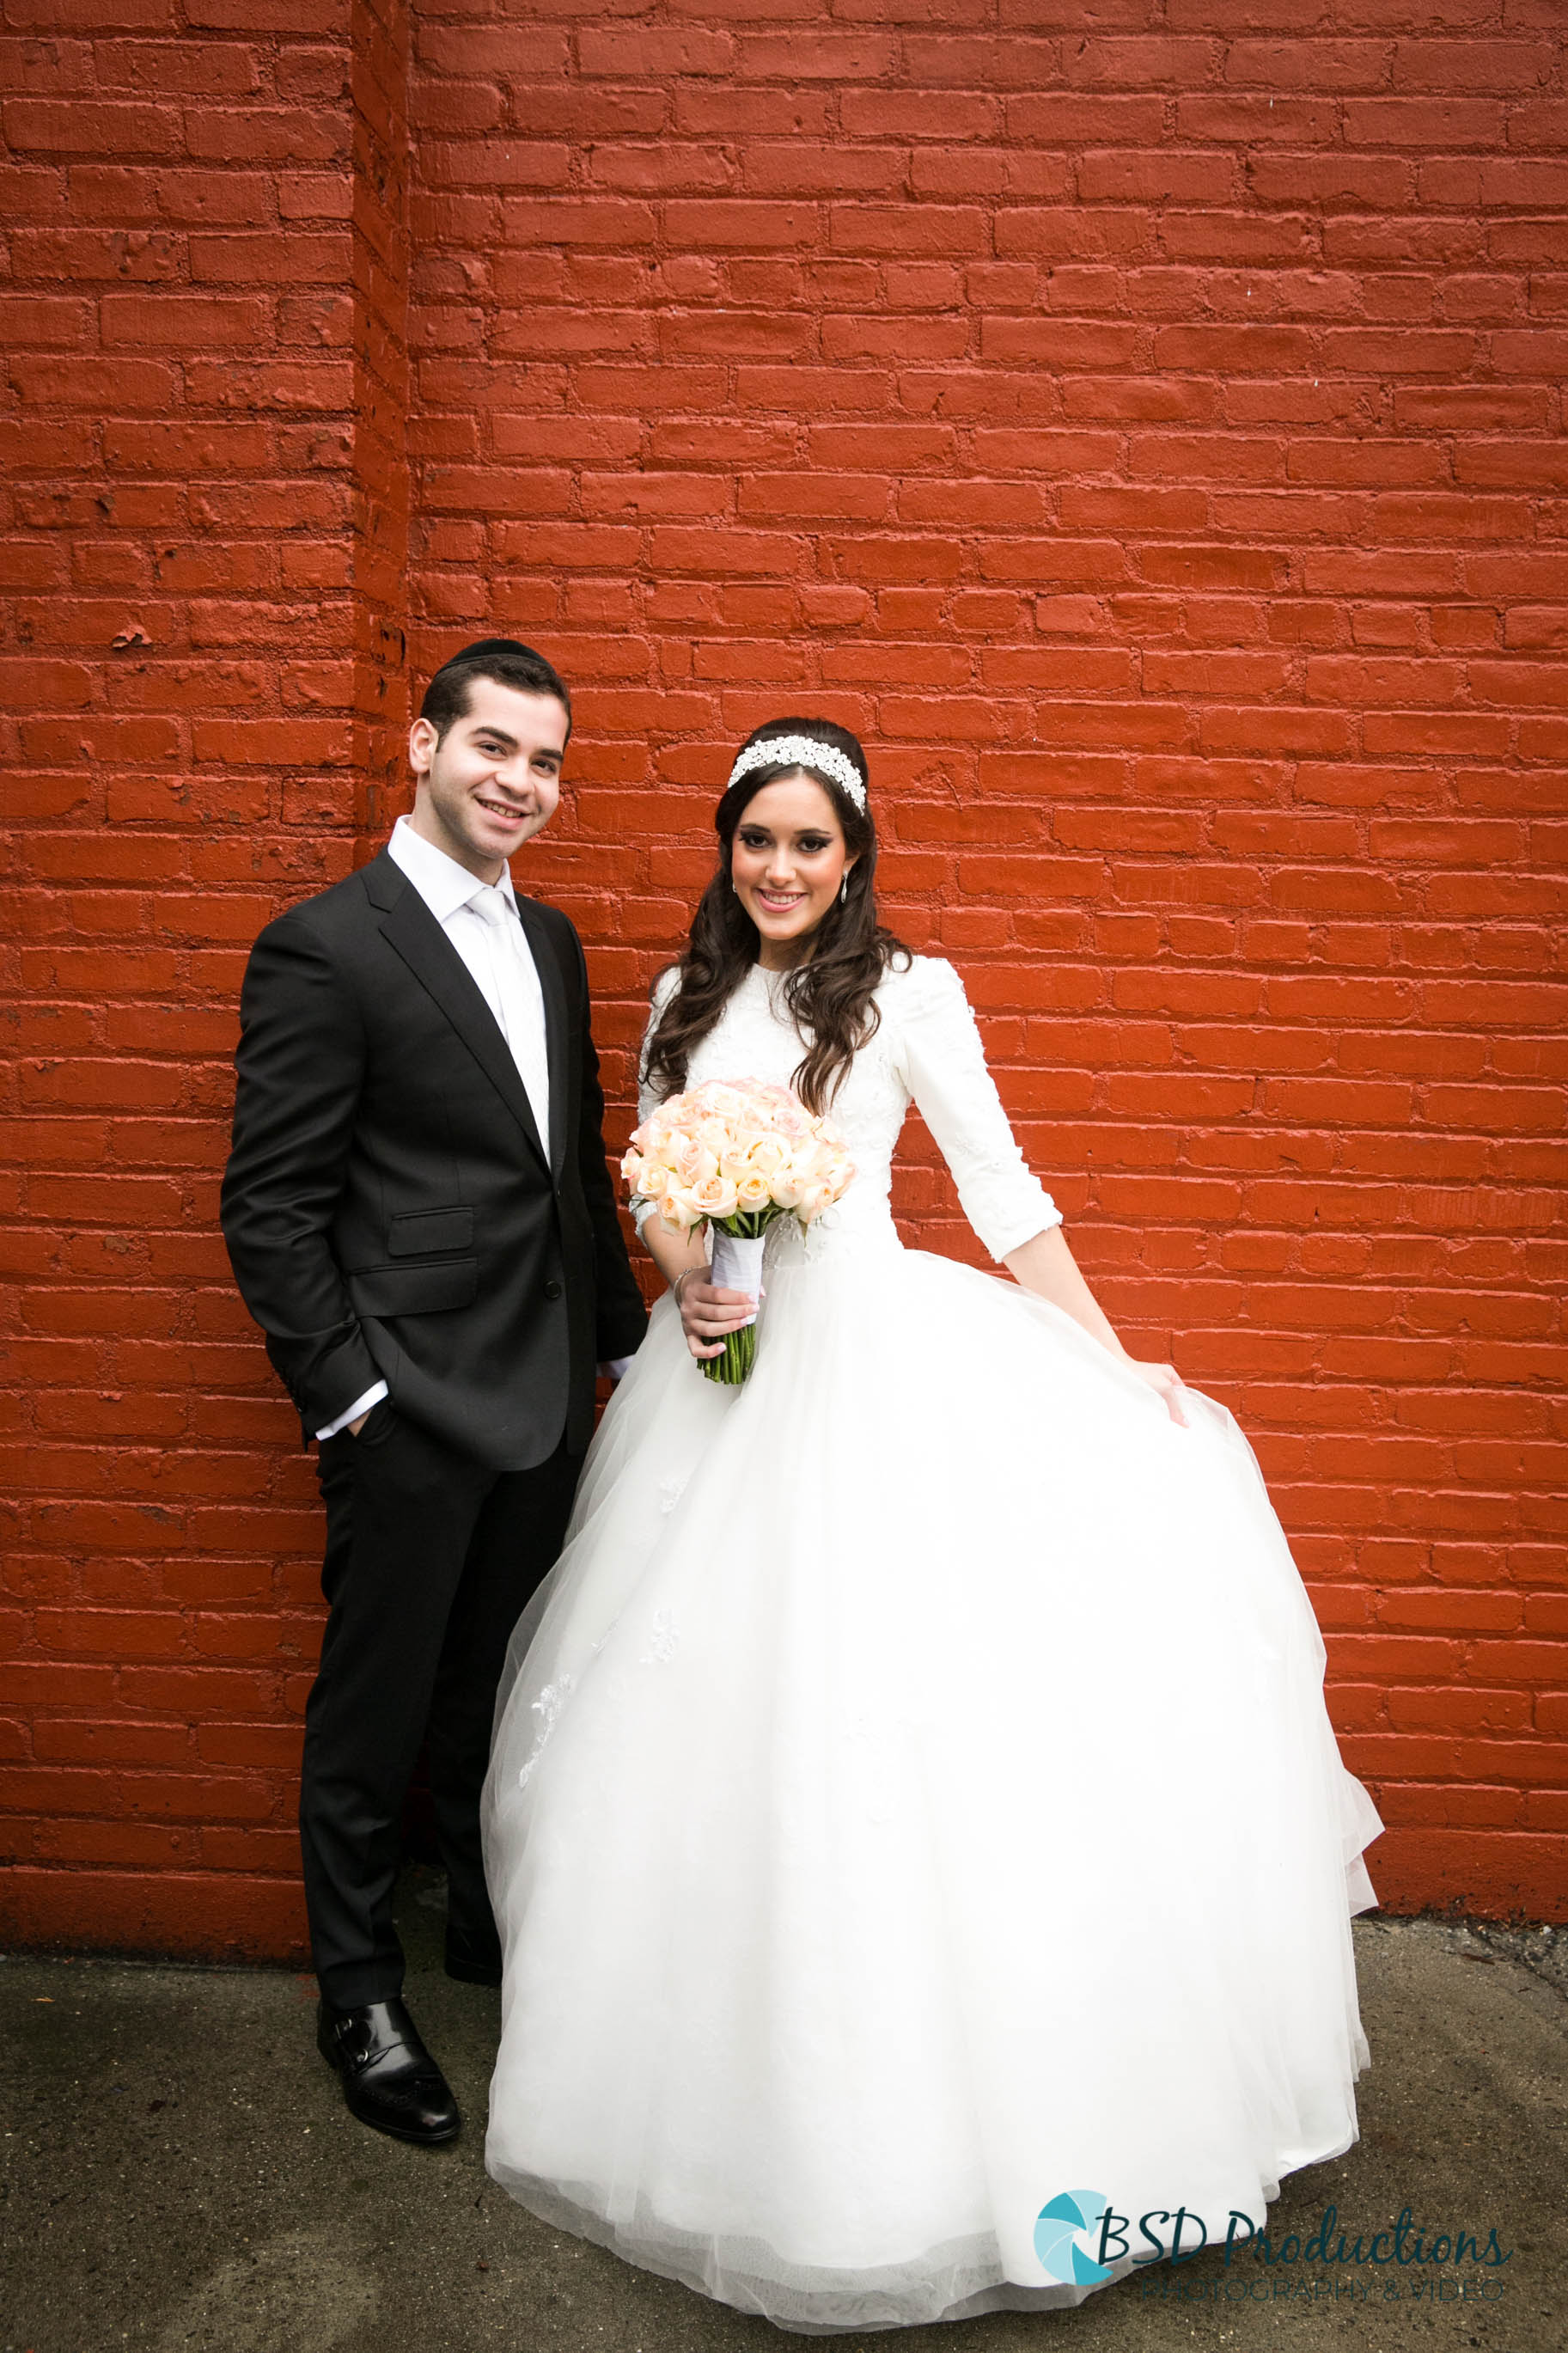 UH5A0373 Wedding – BSD Productions Photography